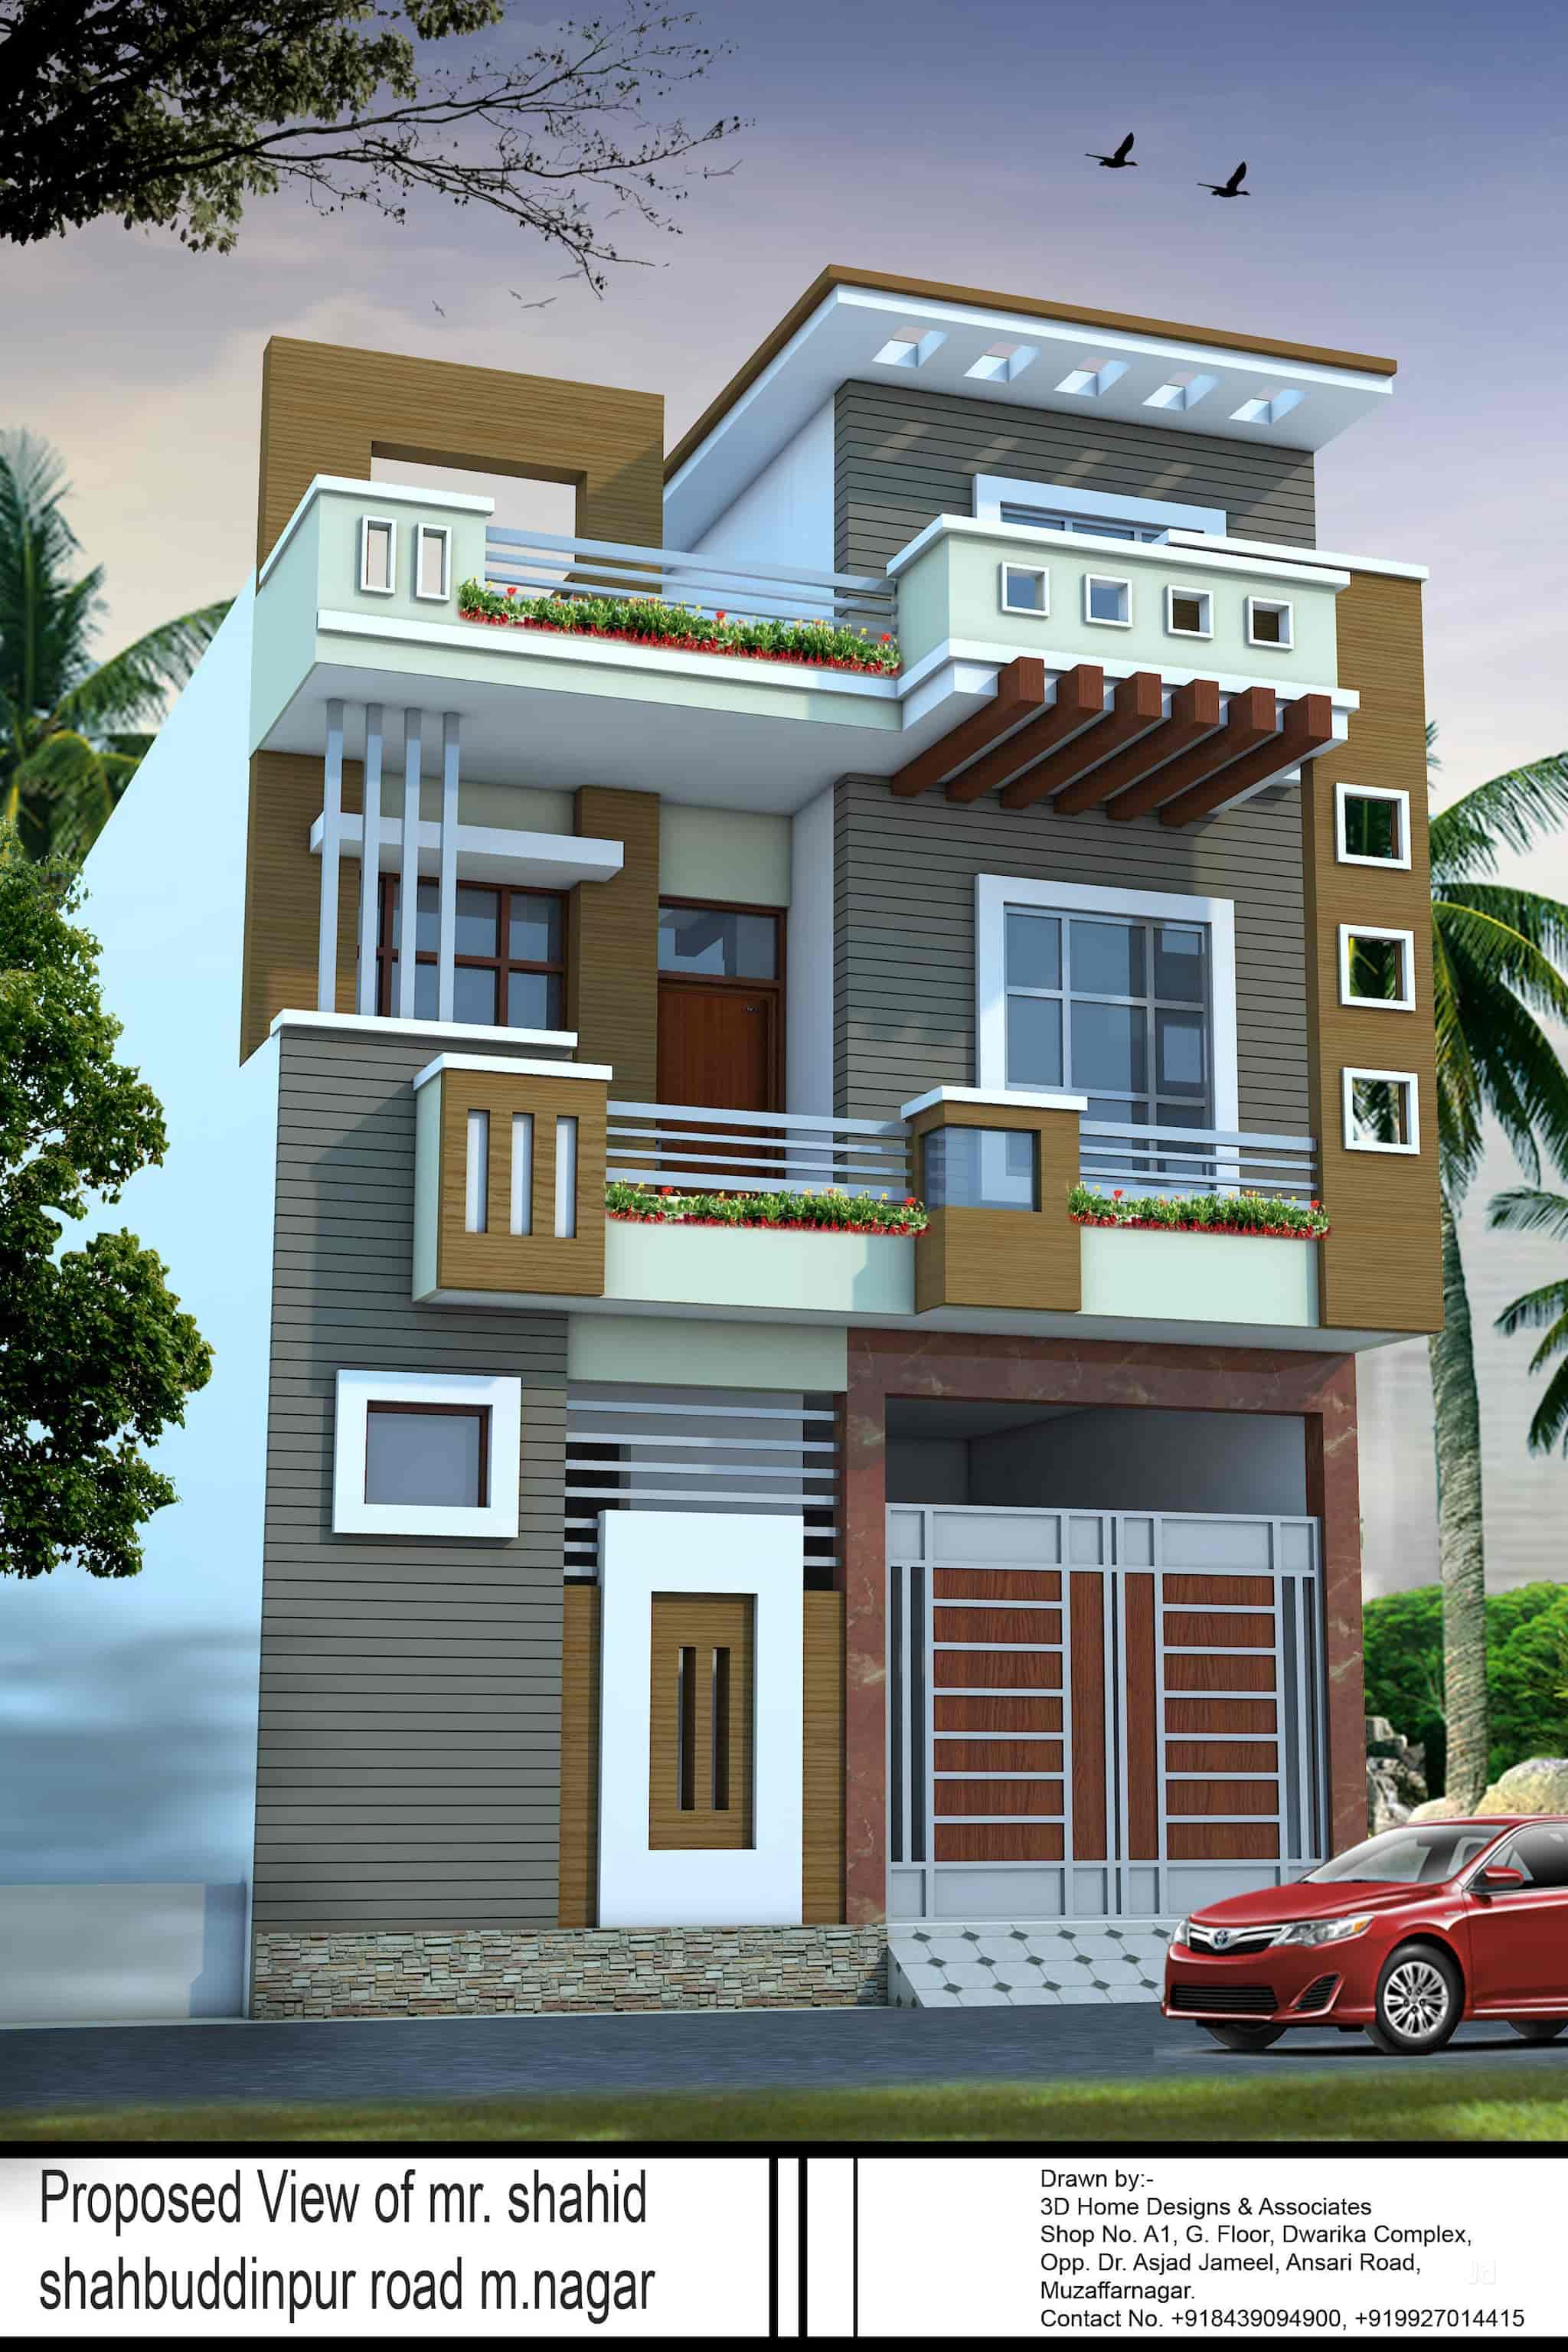 3d Home Designs & Associates, Muzaffar Nagar City - Exterior